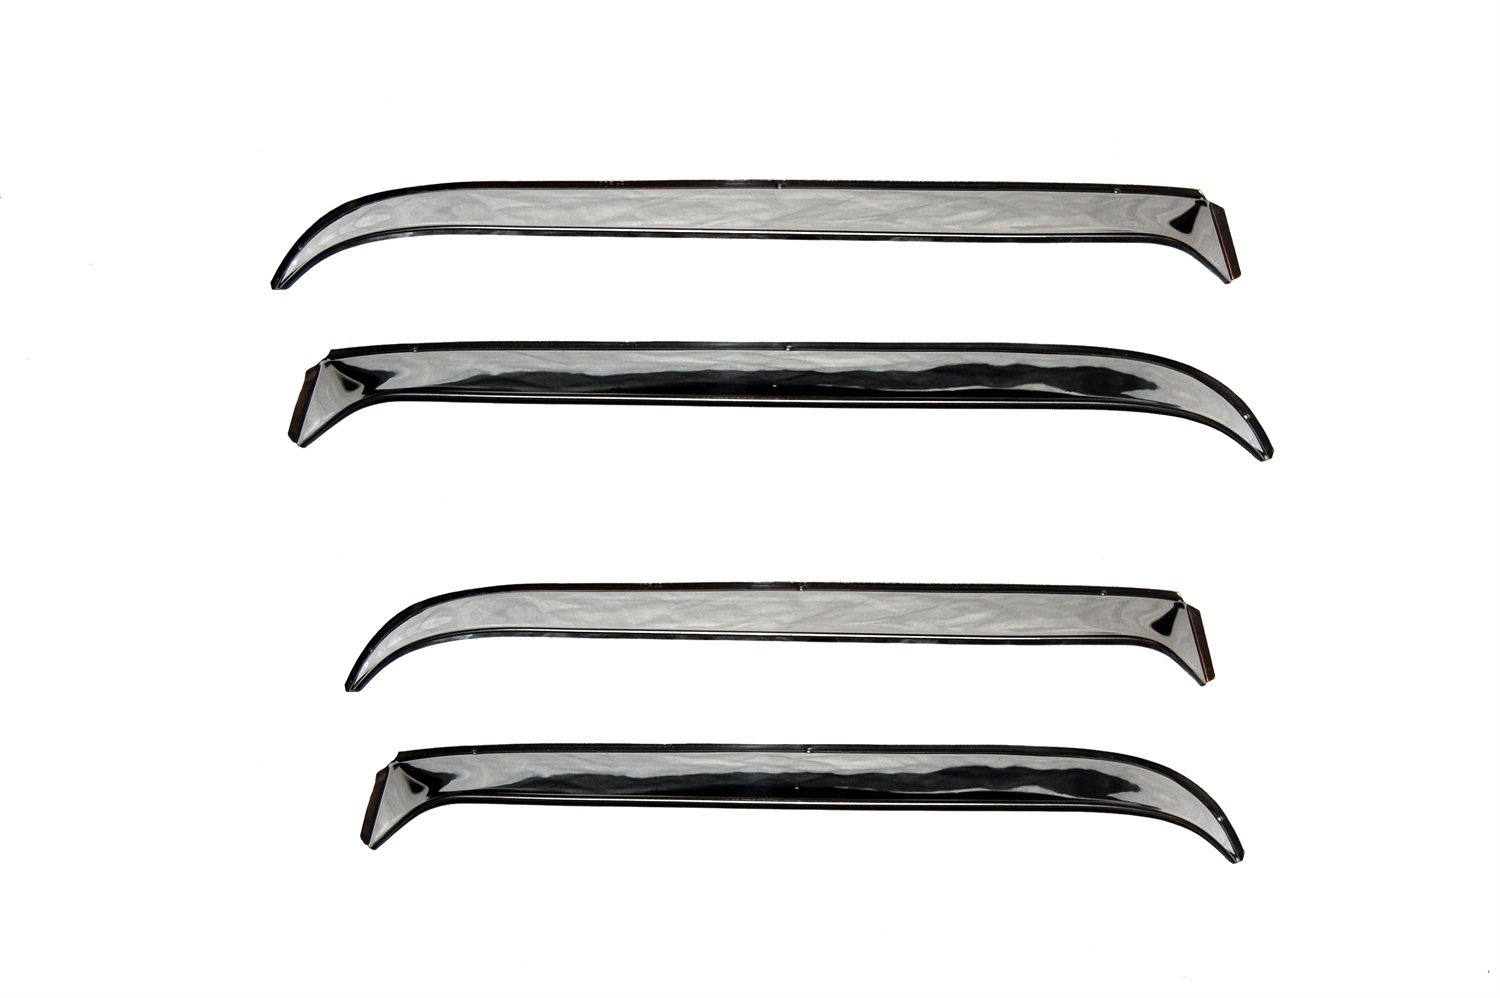 4-Piece Set for 1981-1989 Lincoln Town Car Auto Ventshade 14202 Ventshade with Stainless Steel Finish